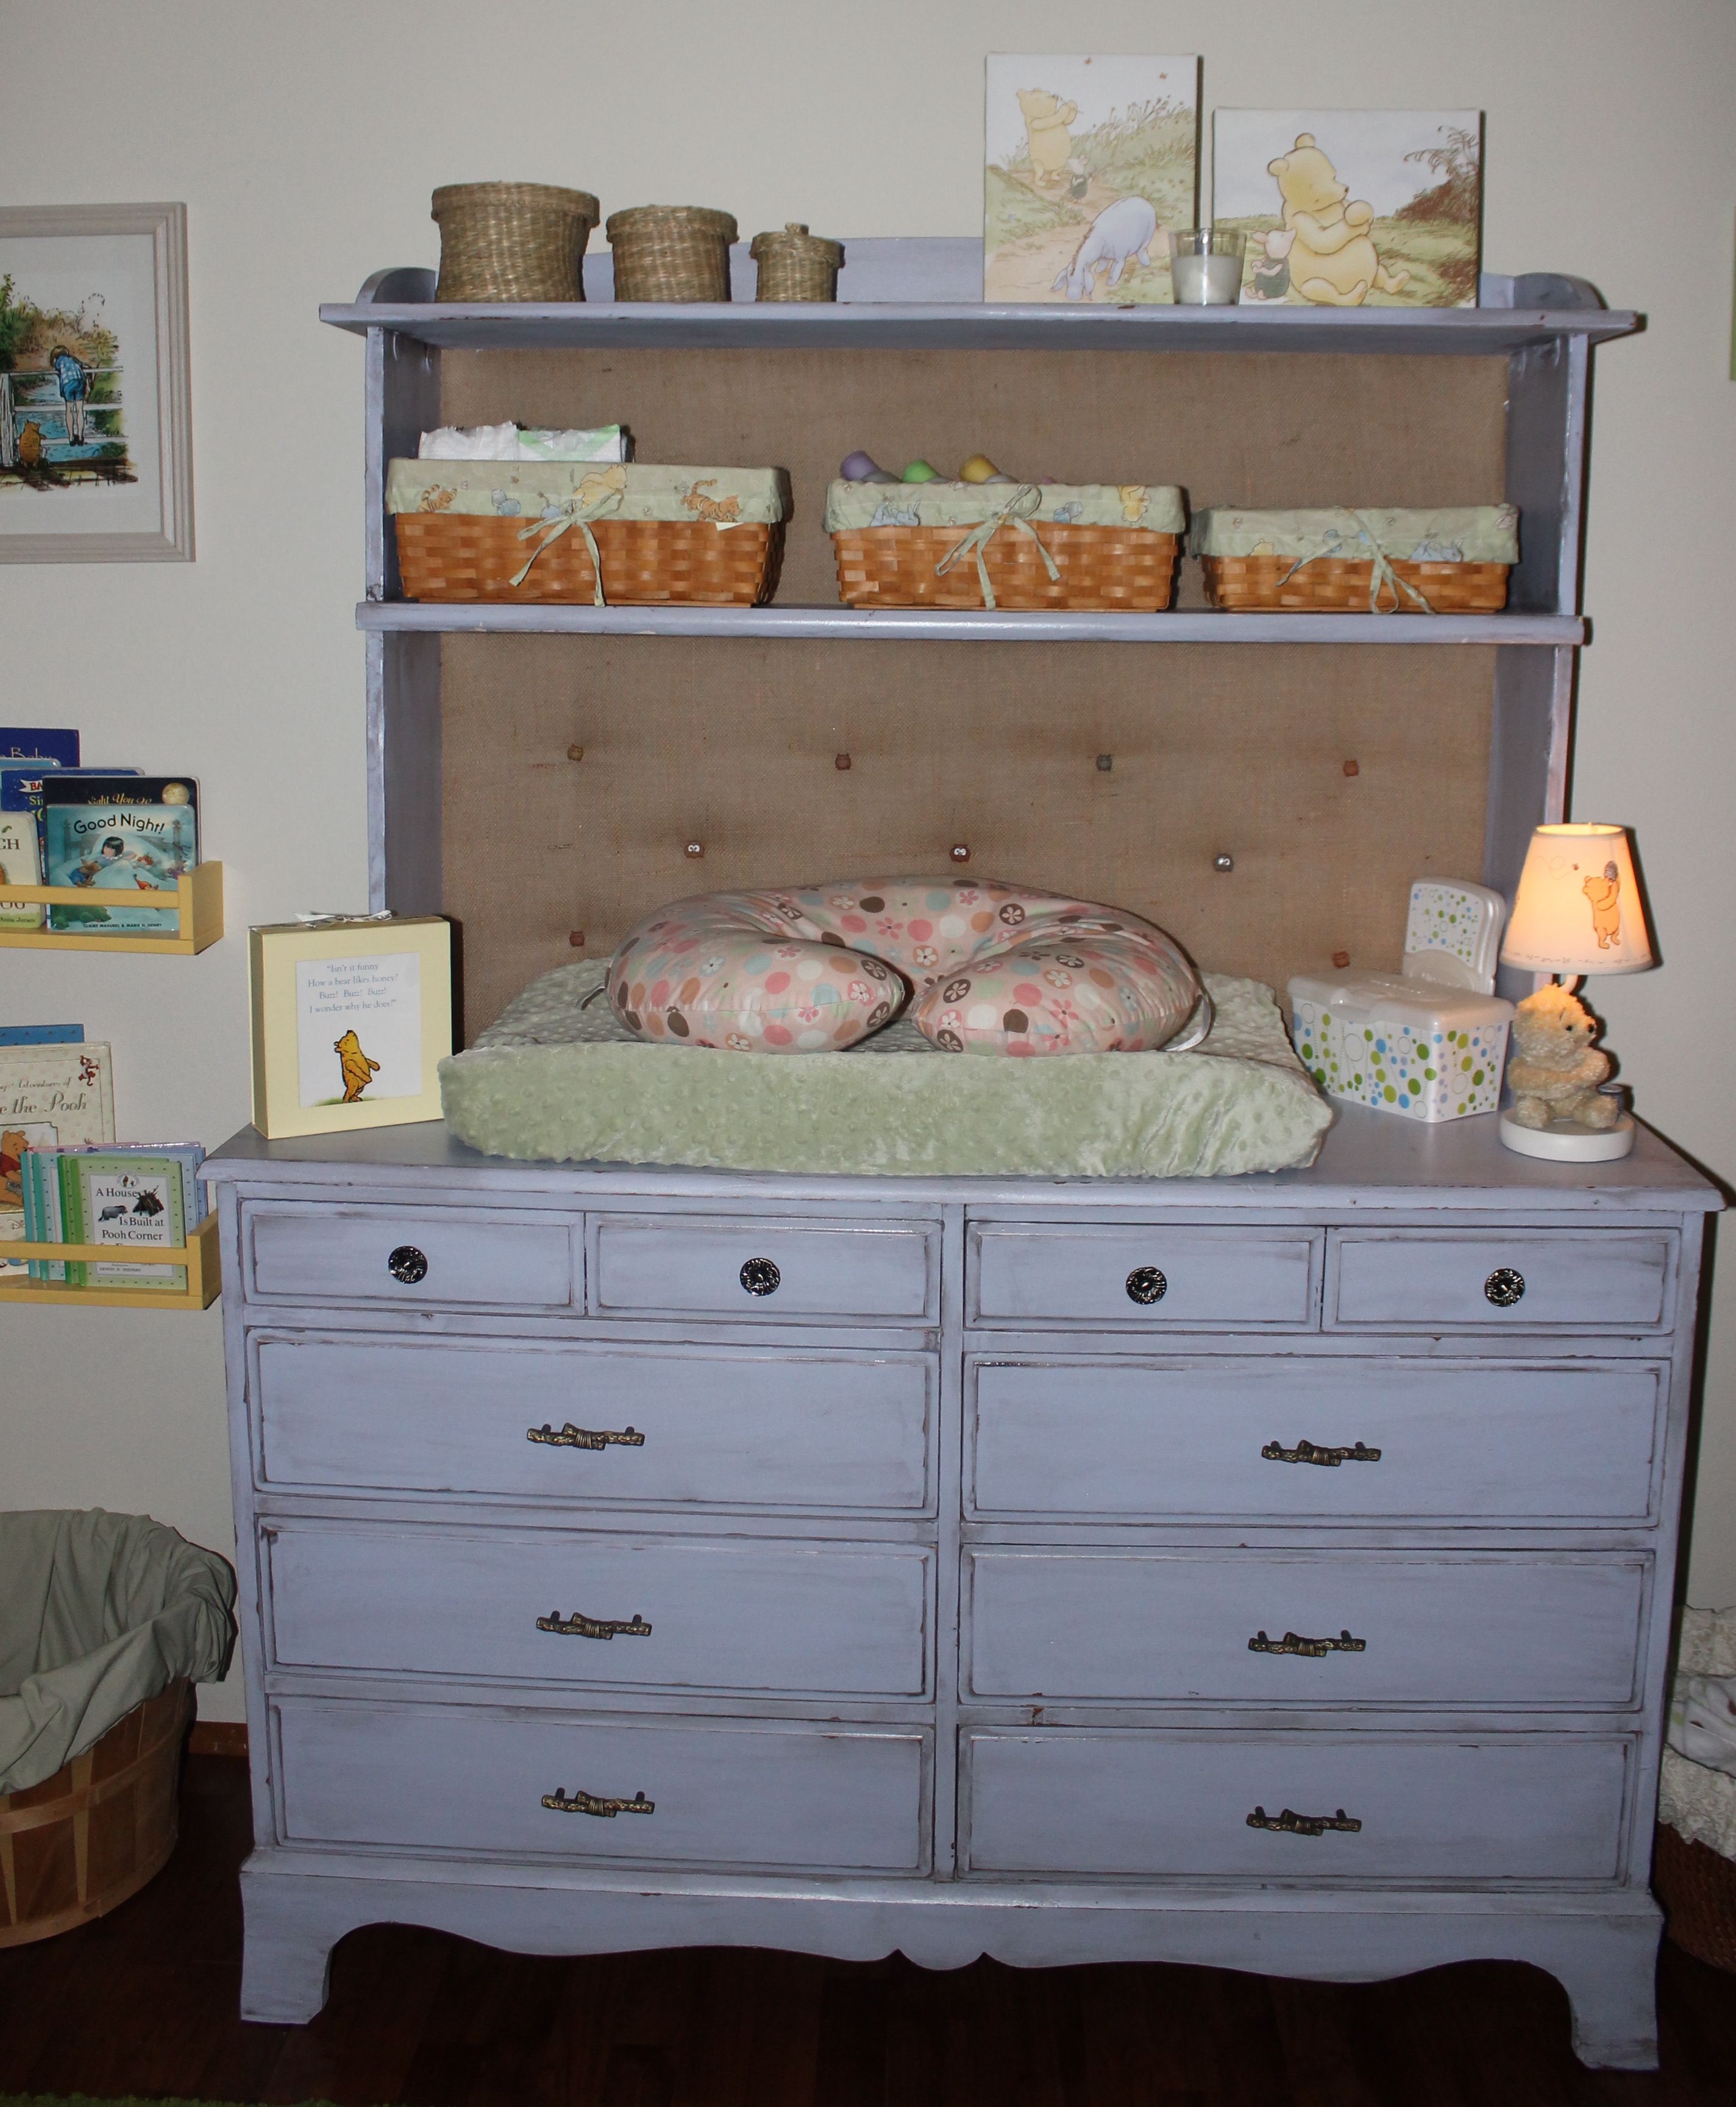 s drawer gray registry hill us baby r seeds stebbins monarch zoom dressers dresser toys white little caitlin poppy ashx james